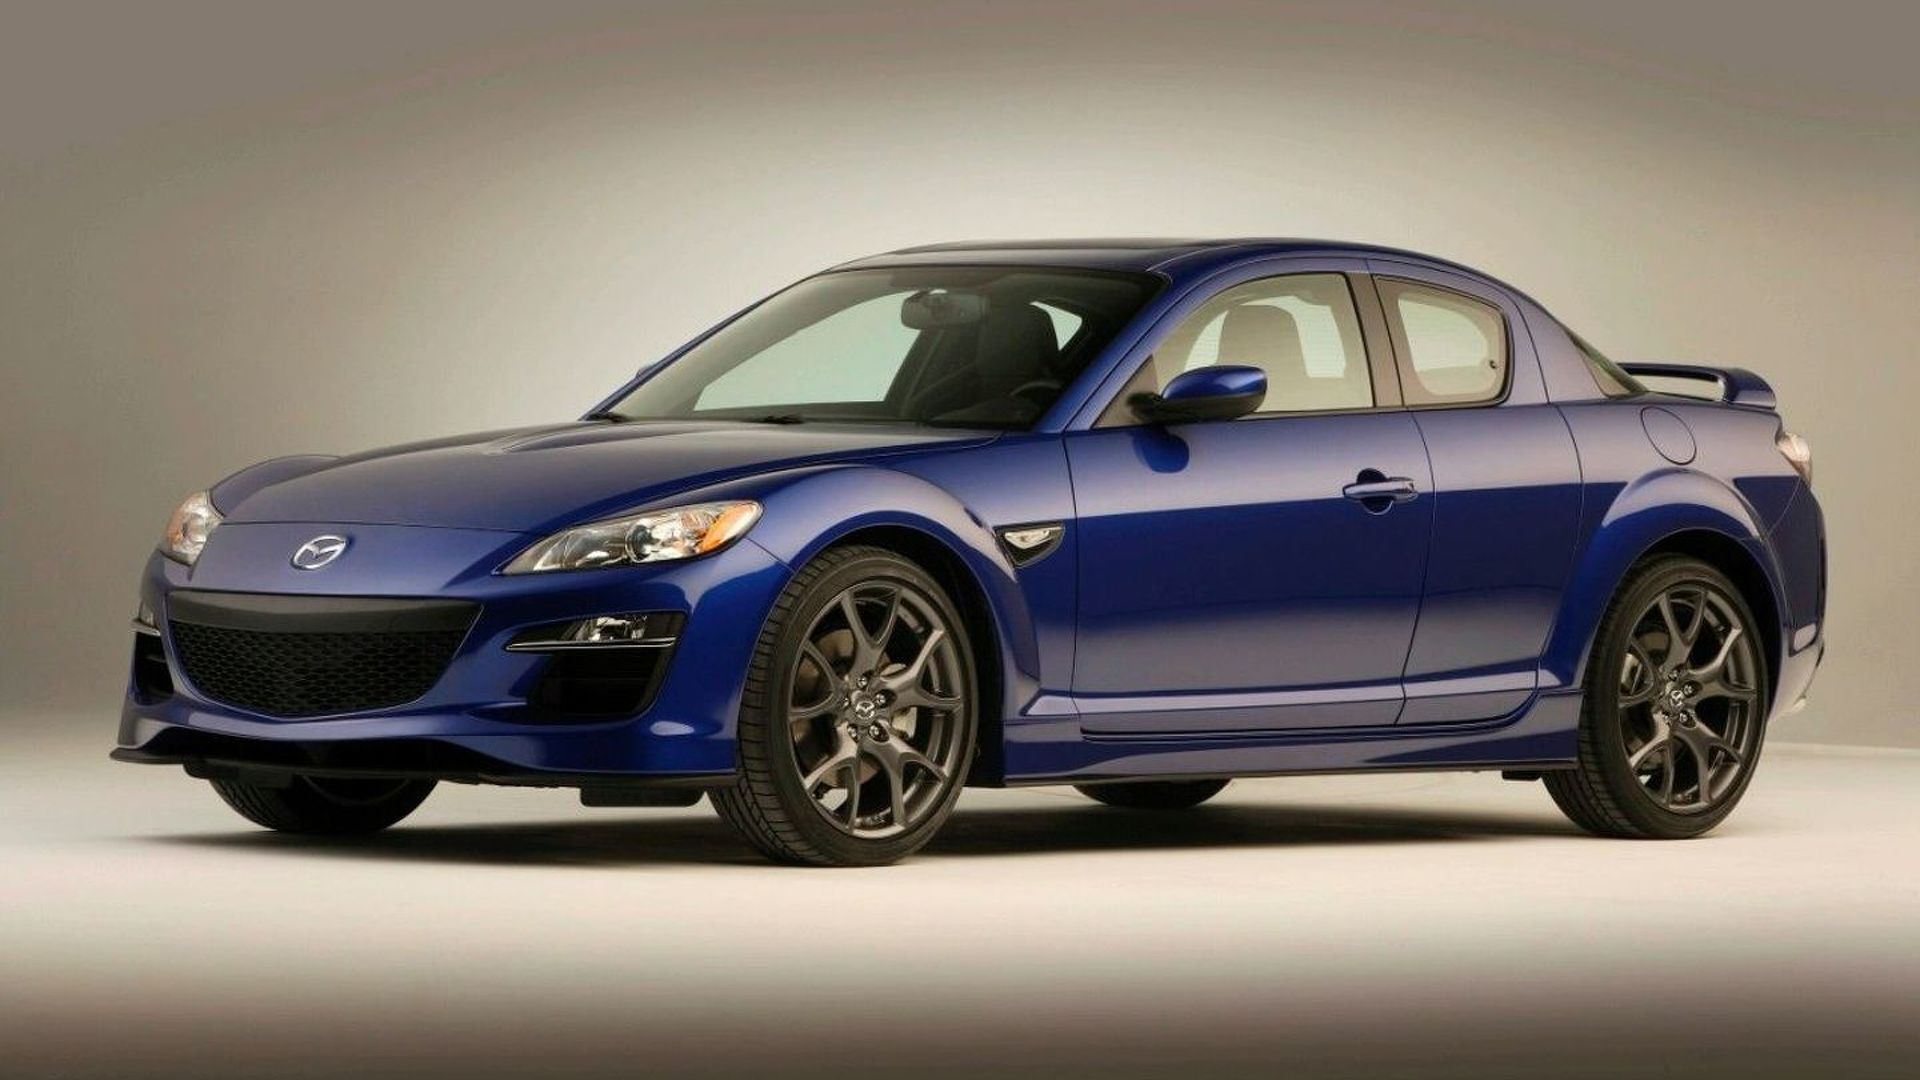 2017 Mazda Rx 7 Rx 8 Successor To Pack A 455 Ps Turbocharged Rotary